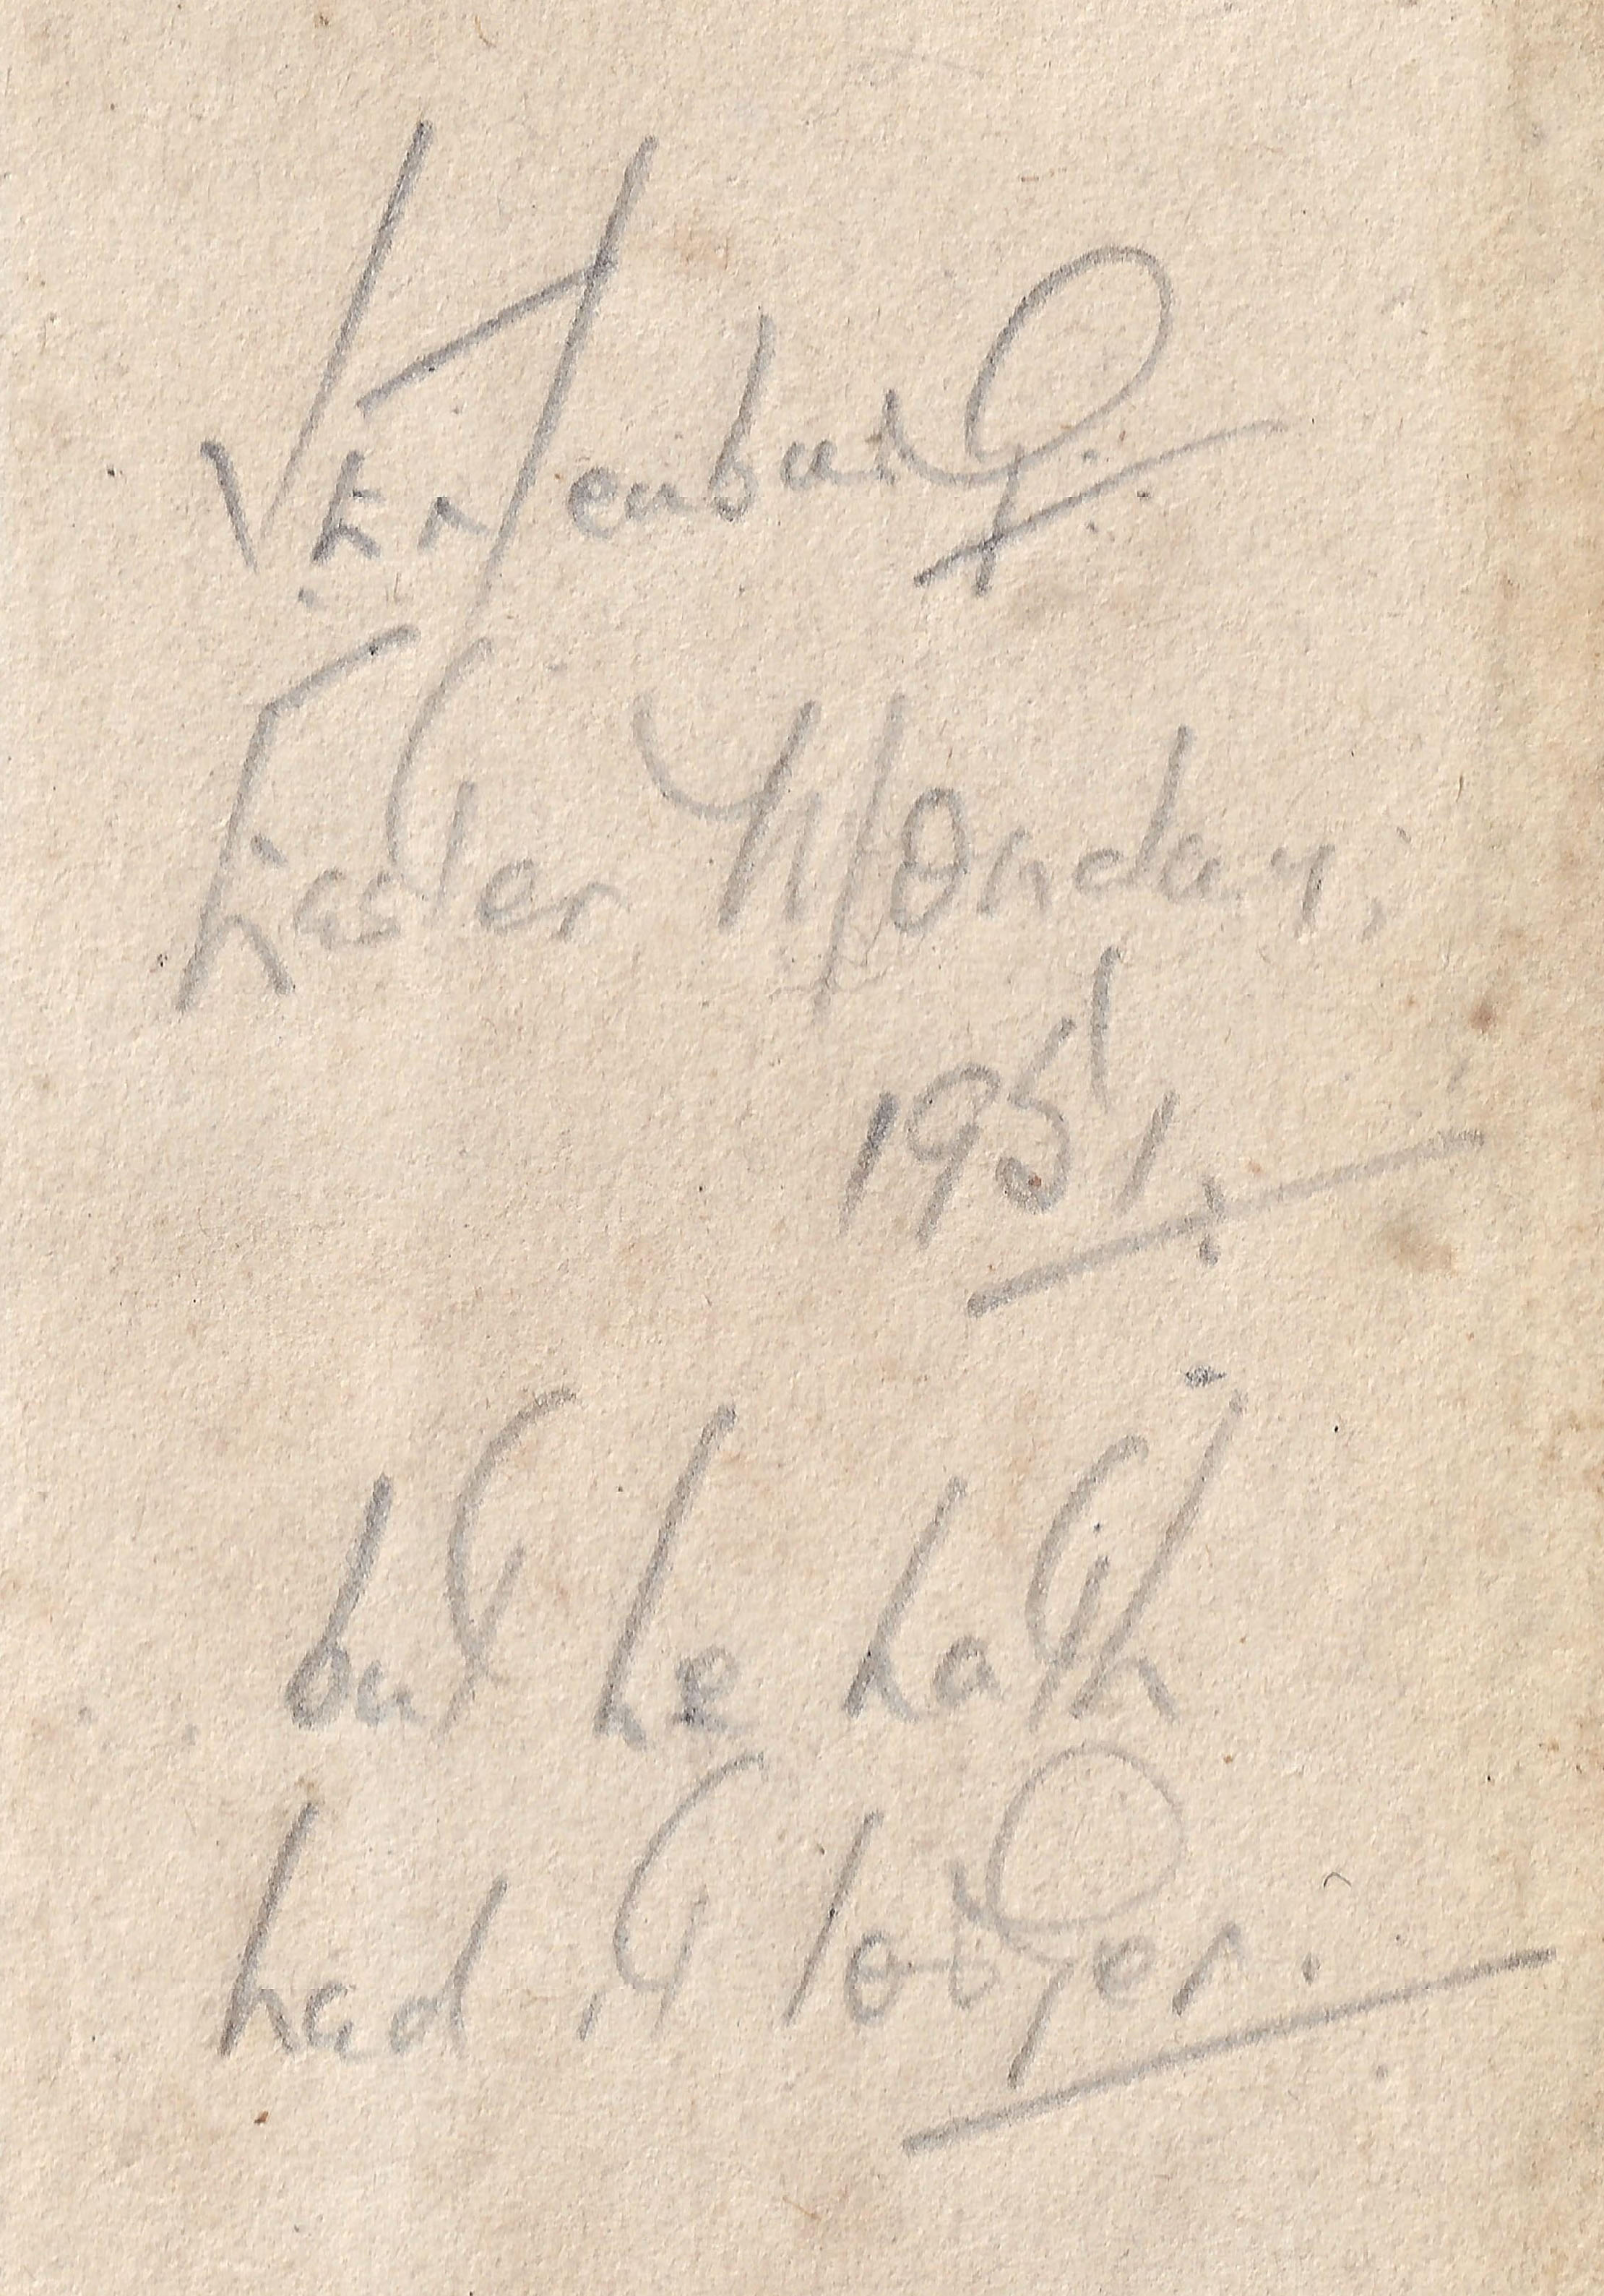 Black and white inscription from the Treasury Of Wit with the name of a past owner, possibly 'J Entenburg', then saying, 'Easter Monday, 1951, but he hath had it longer.'